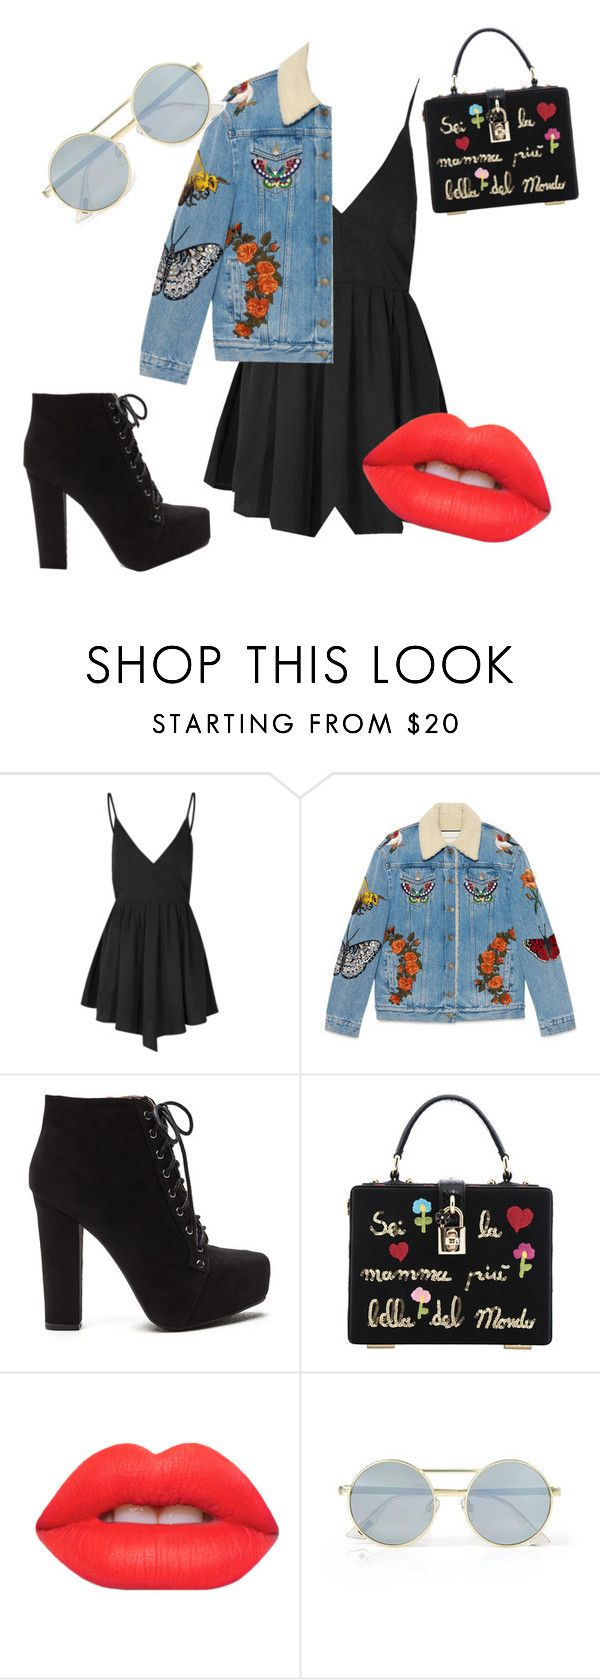 """""""Untitled #9"""" by sofiarhdacruz ❤ liked on Polyvore featuring Glamorous, Gucci, Dolce&Gabbana, Lime Crime and Le Specs"""